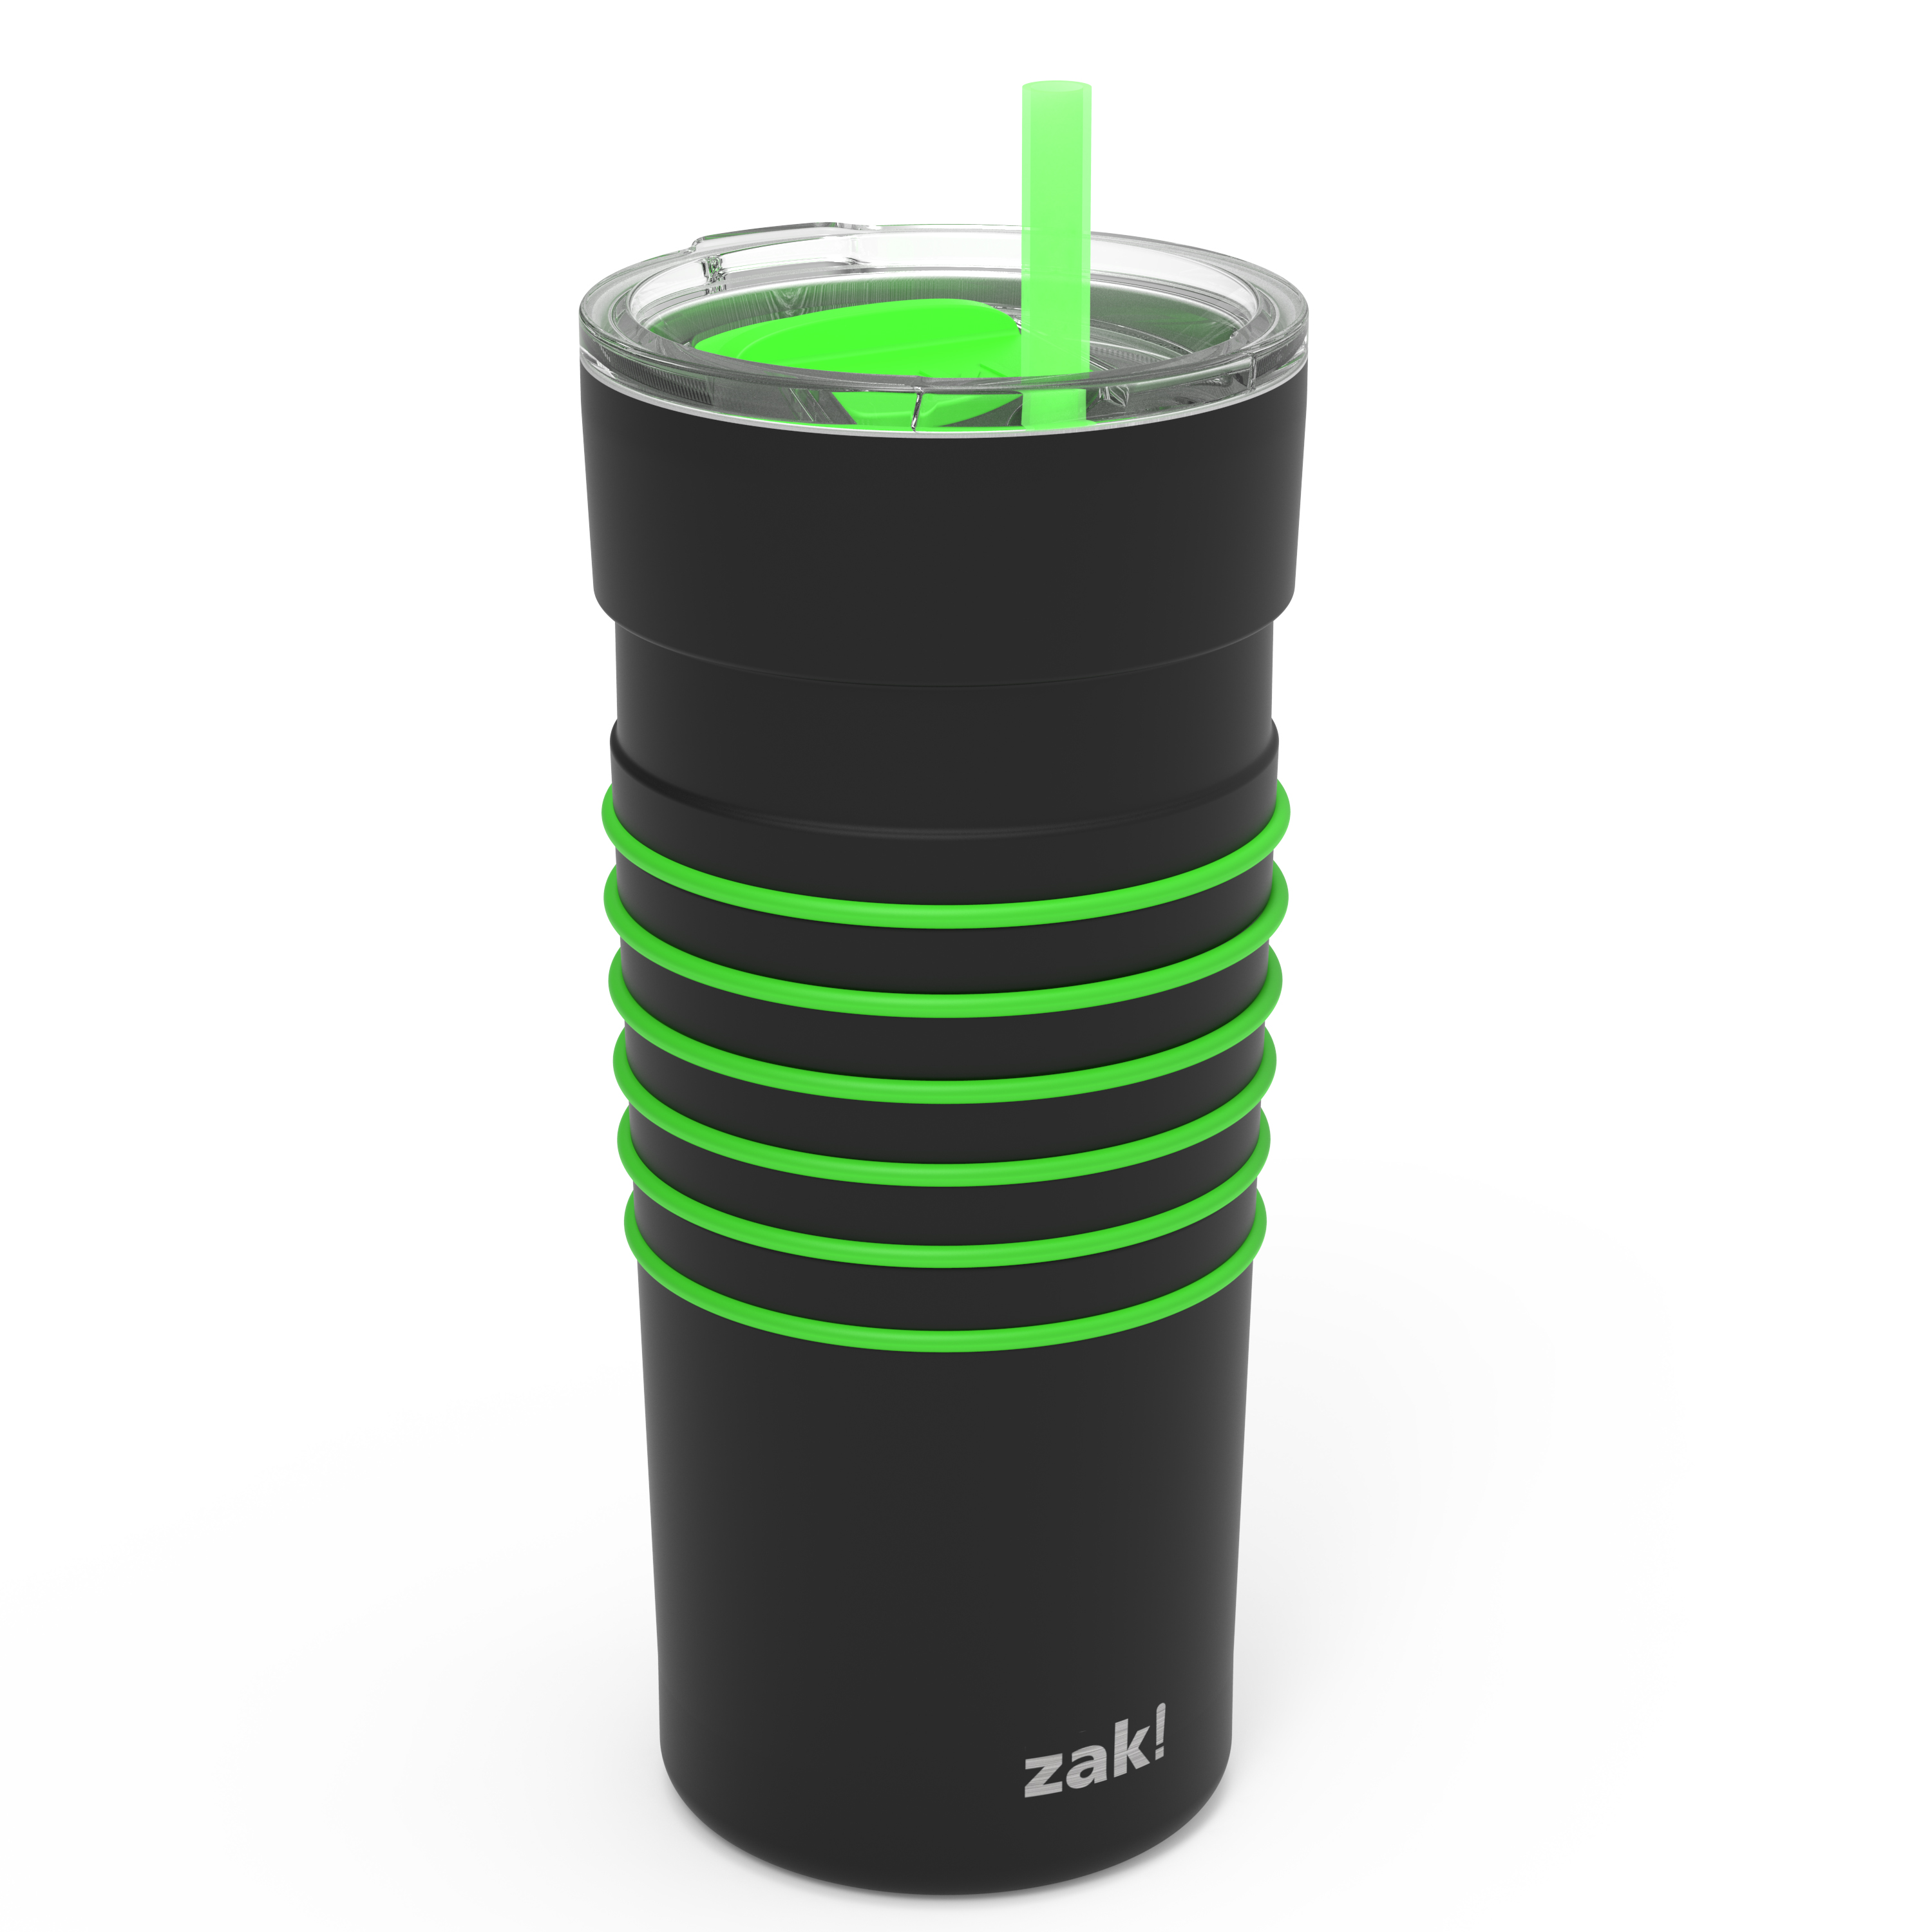 HydraTrak 20 ounce Vacuum Insulated Stainless Steel Tumbler, Black with Green Rings slideshow image 2